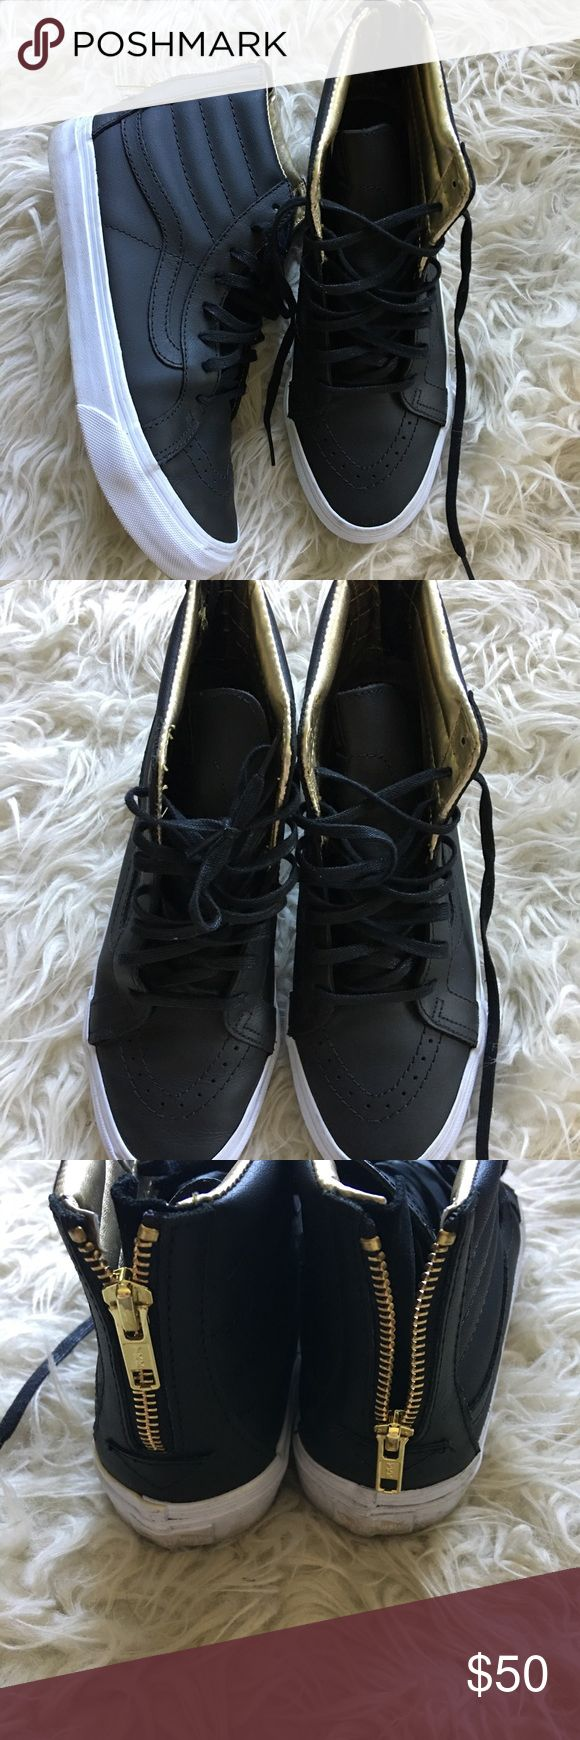 Like New Leather Vans Hi Top w. Gold Detail Sz 9 These are a men's 7.5 and women's 9.  They are in near new condition. They have great interior Gold Detail and also a gold zip up back for easy off and on. Vans Shoes Sneakers